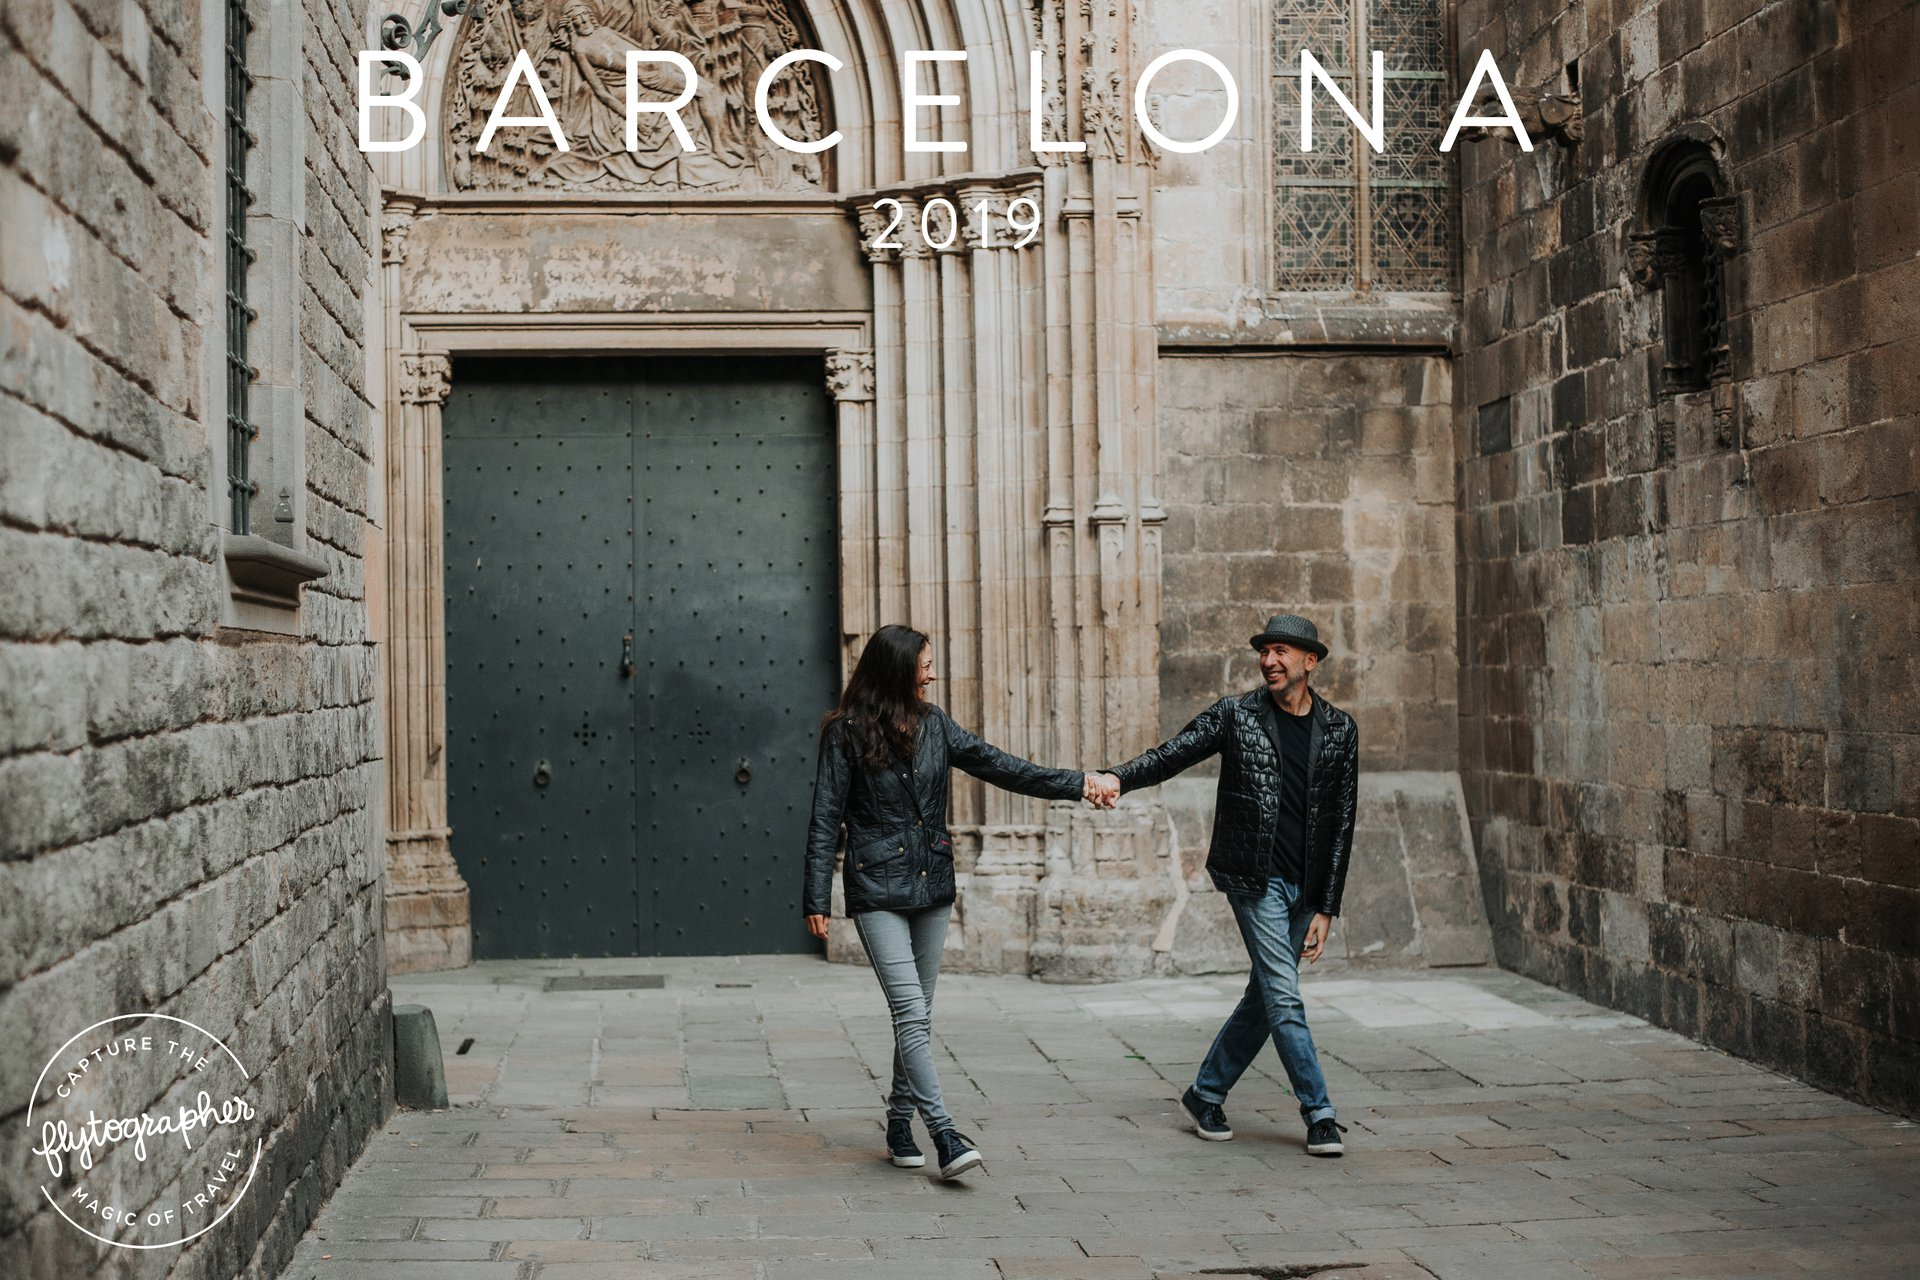 Flytographer Travel Story - A Barcelona Love Story